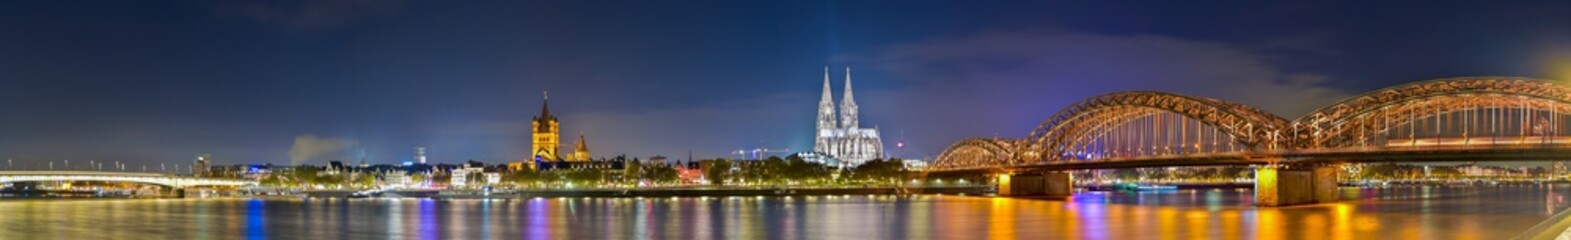 Panorama of cologne with the Hohenzollern Bridge over the Rhine River and Cologne Cathedral by night Fotobehang